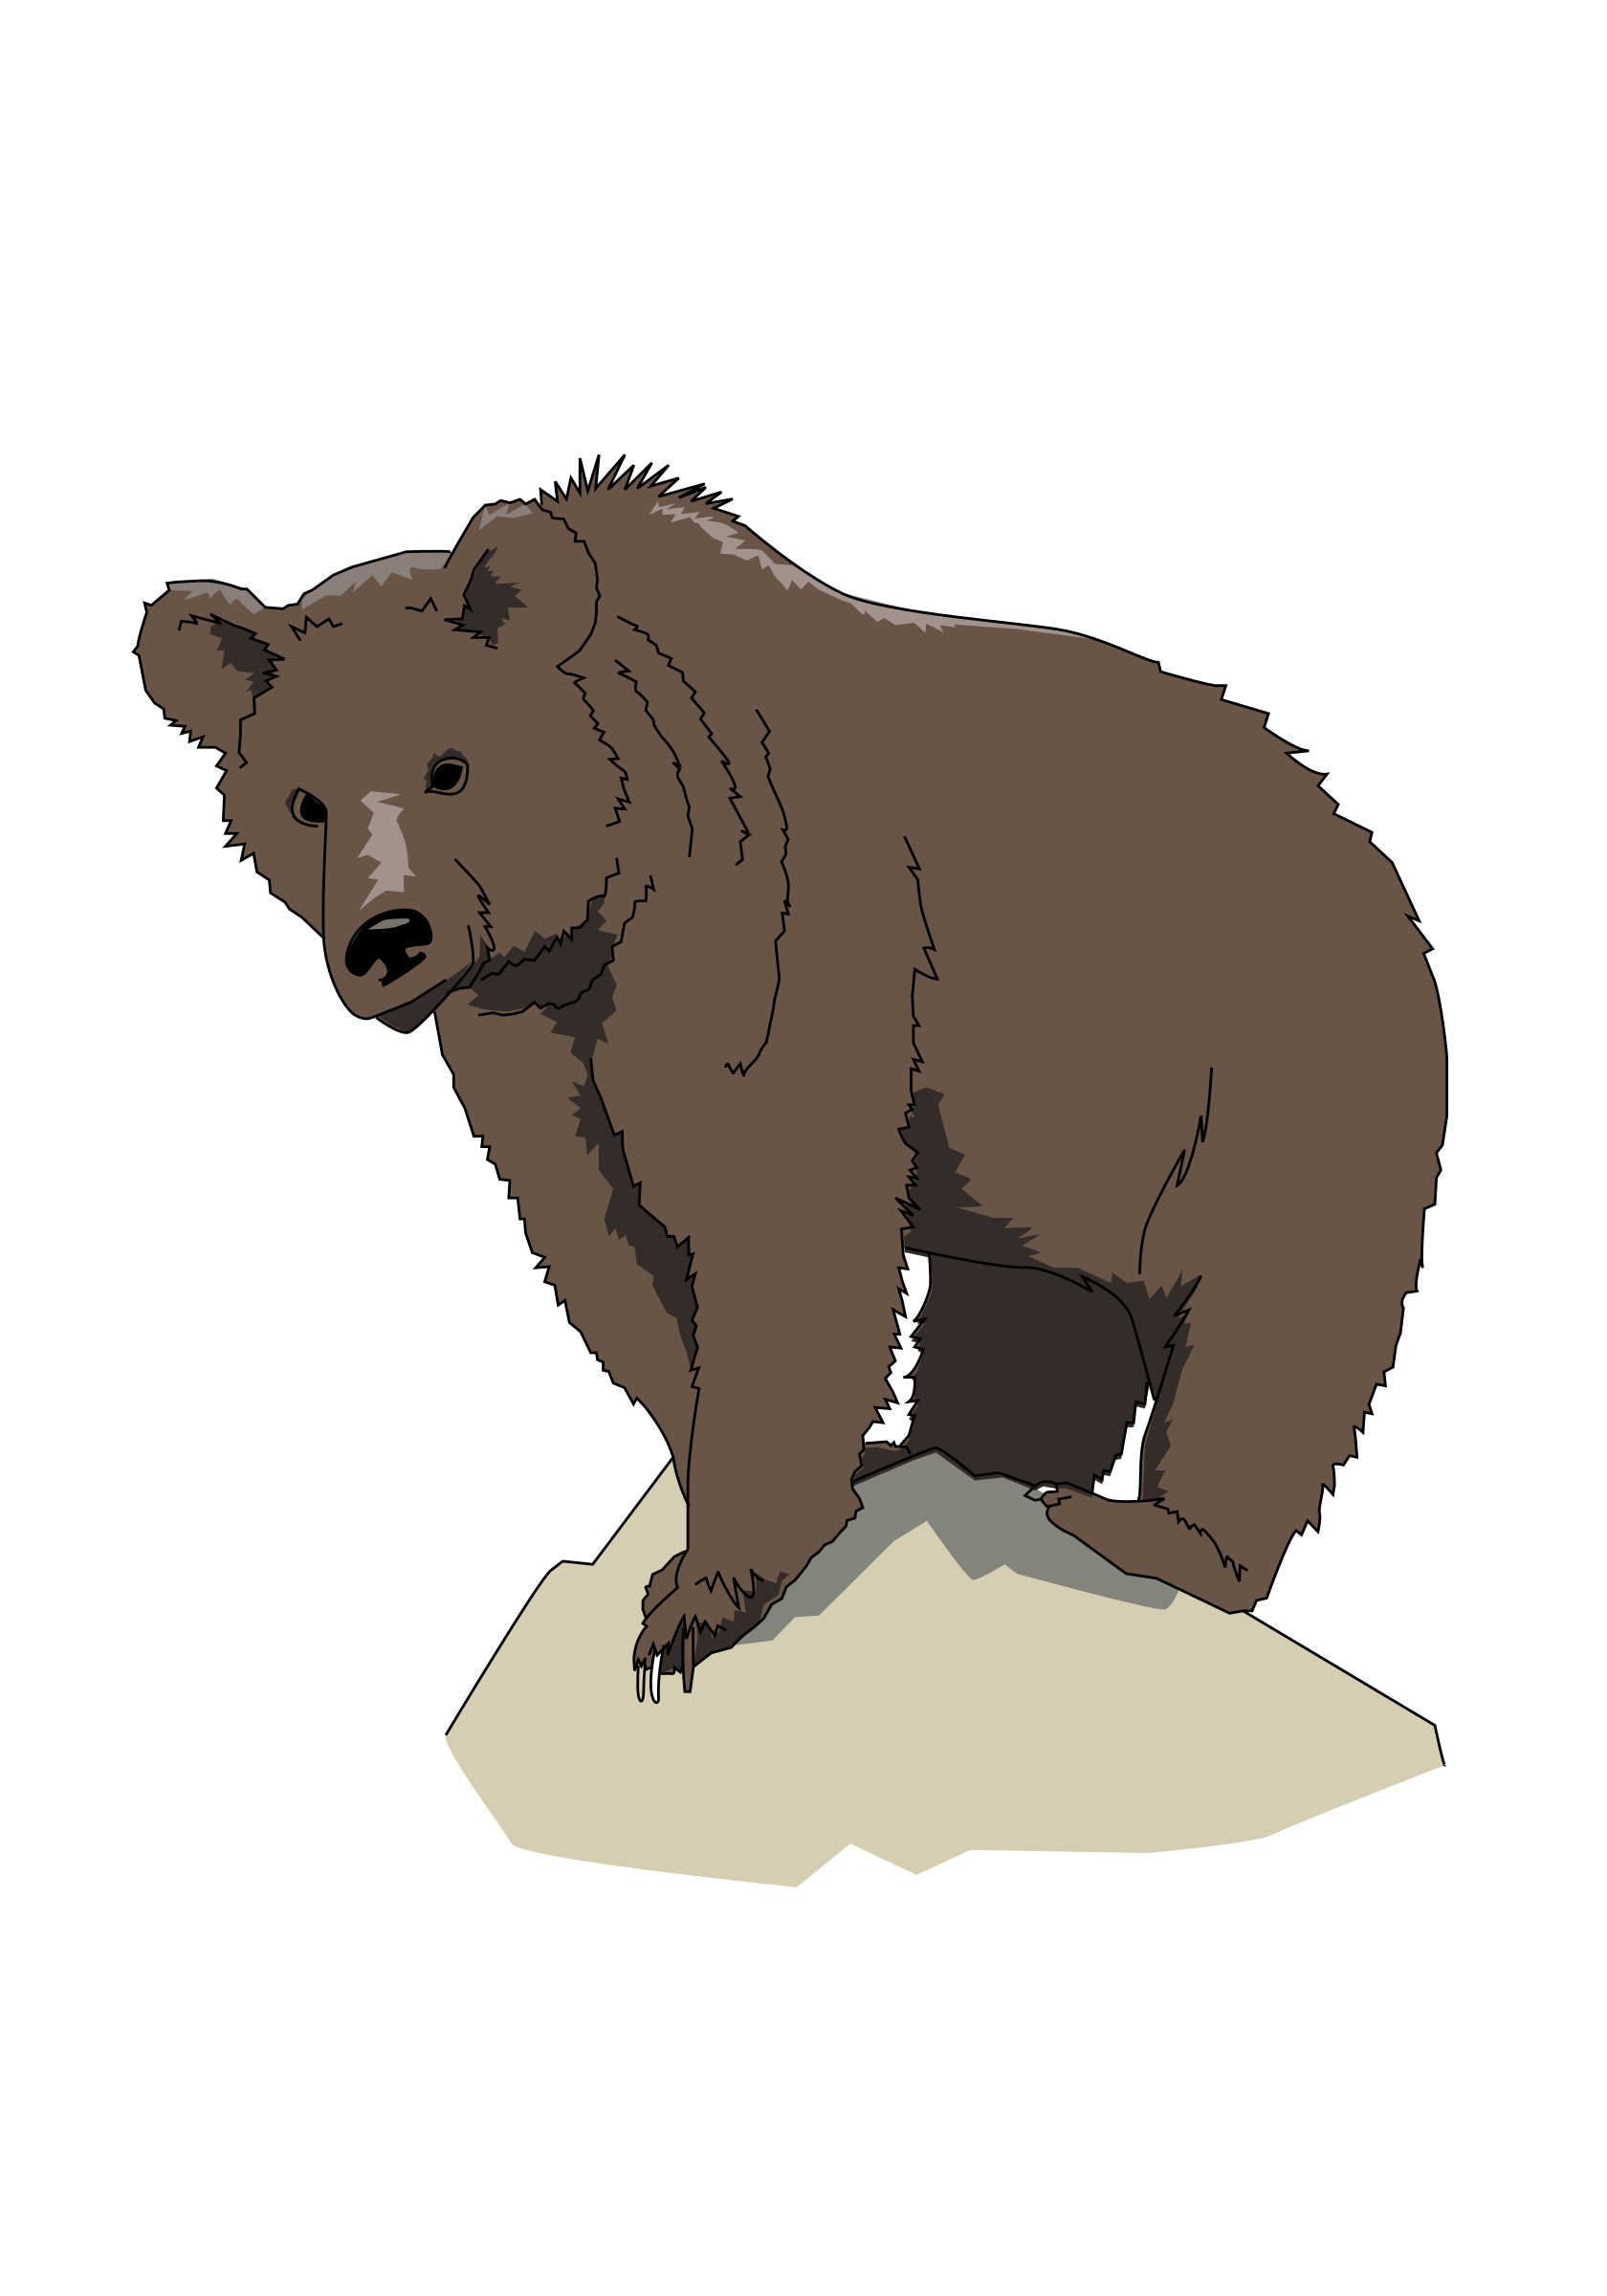 Brown bear by enolynn